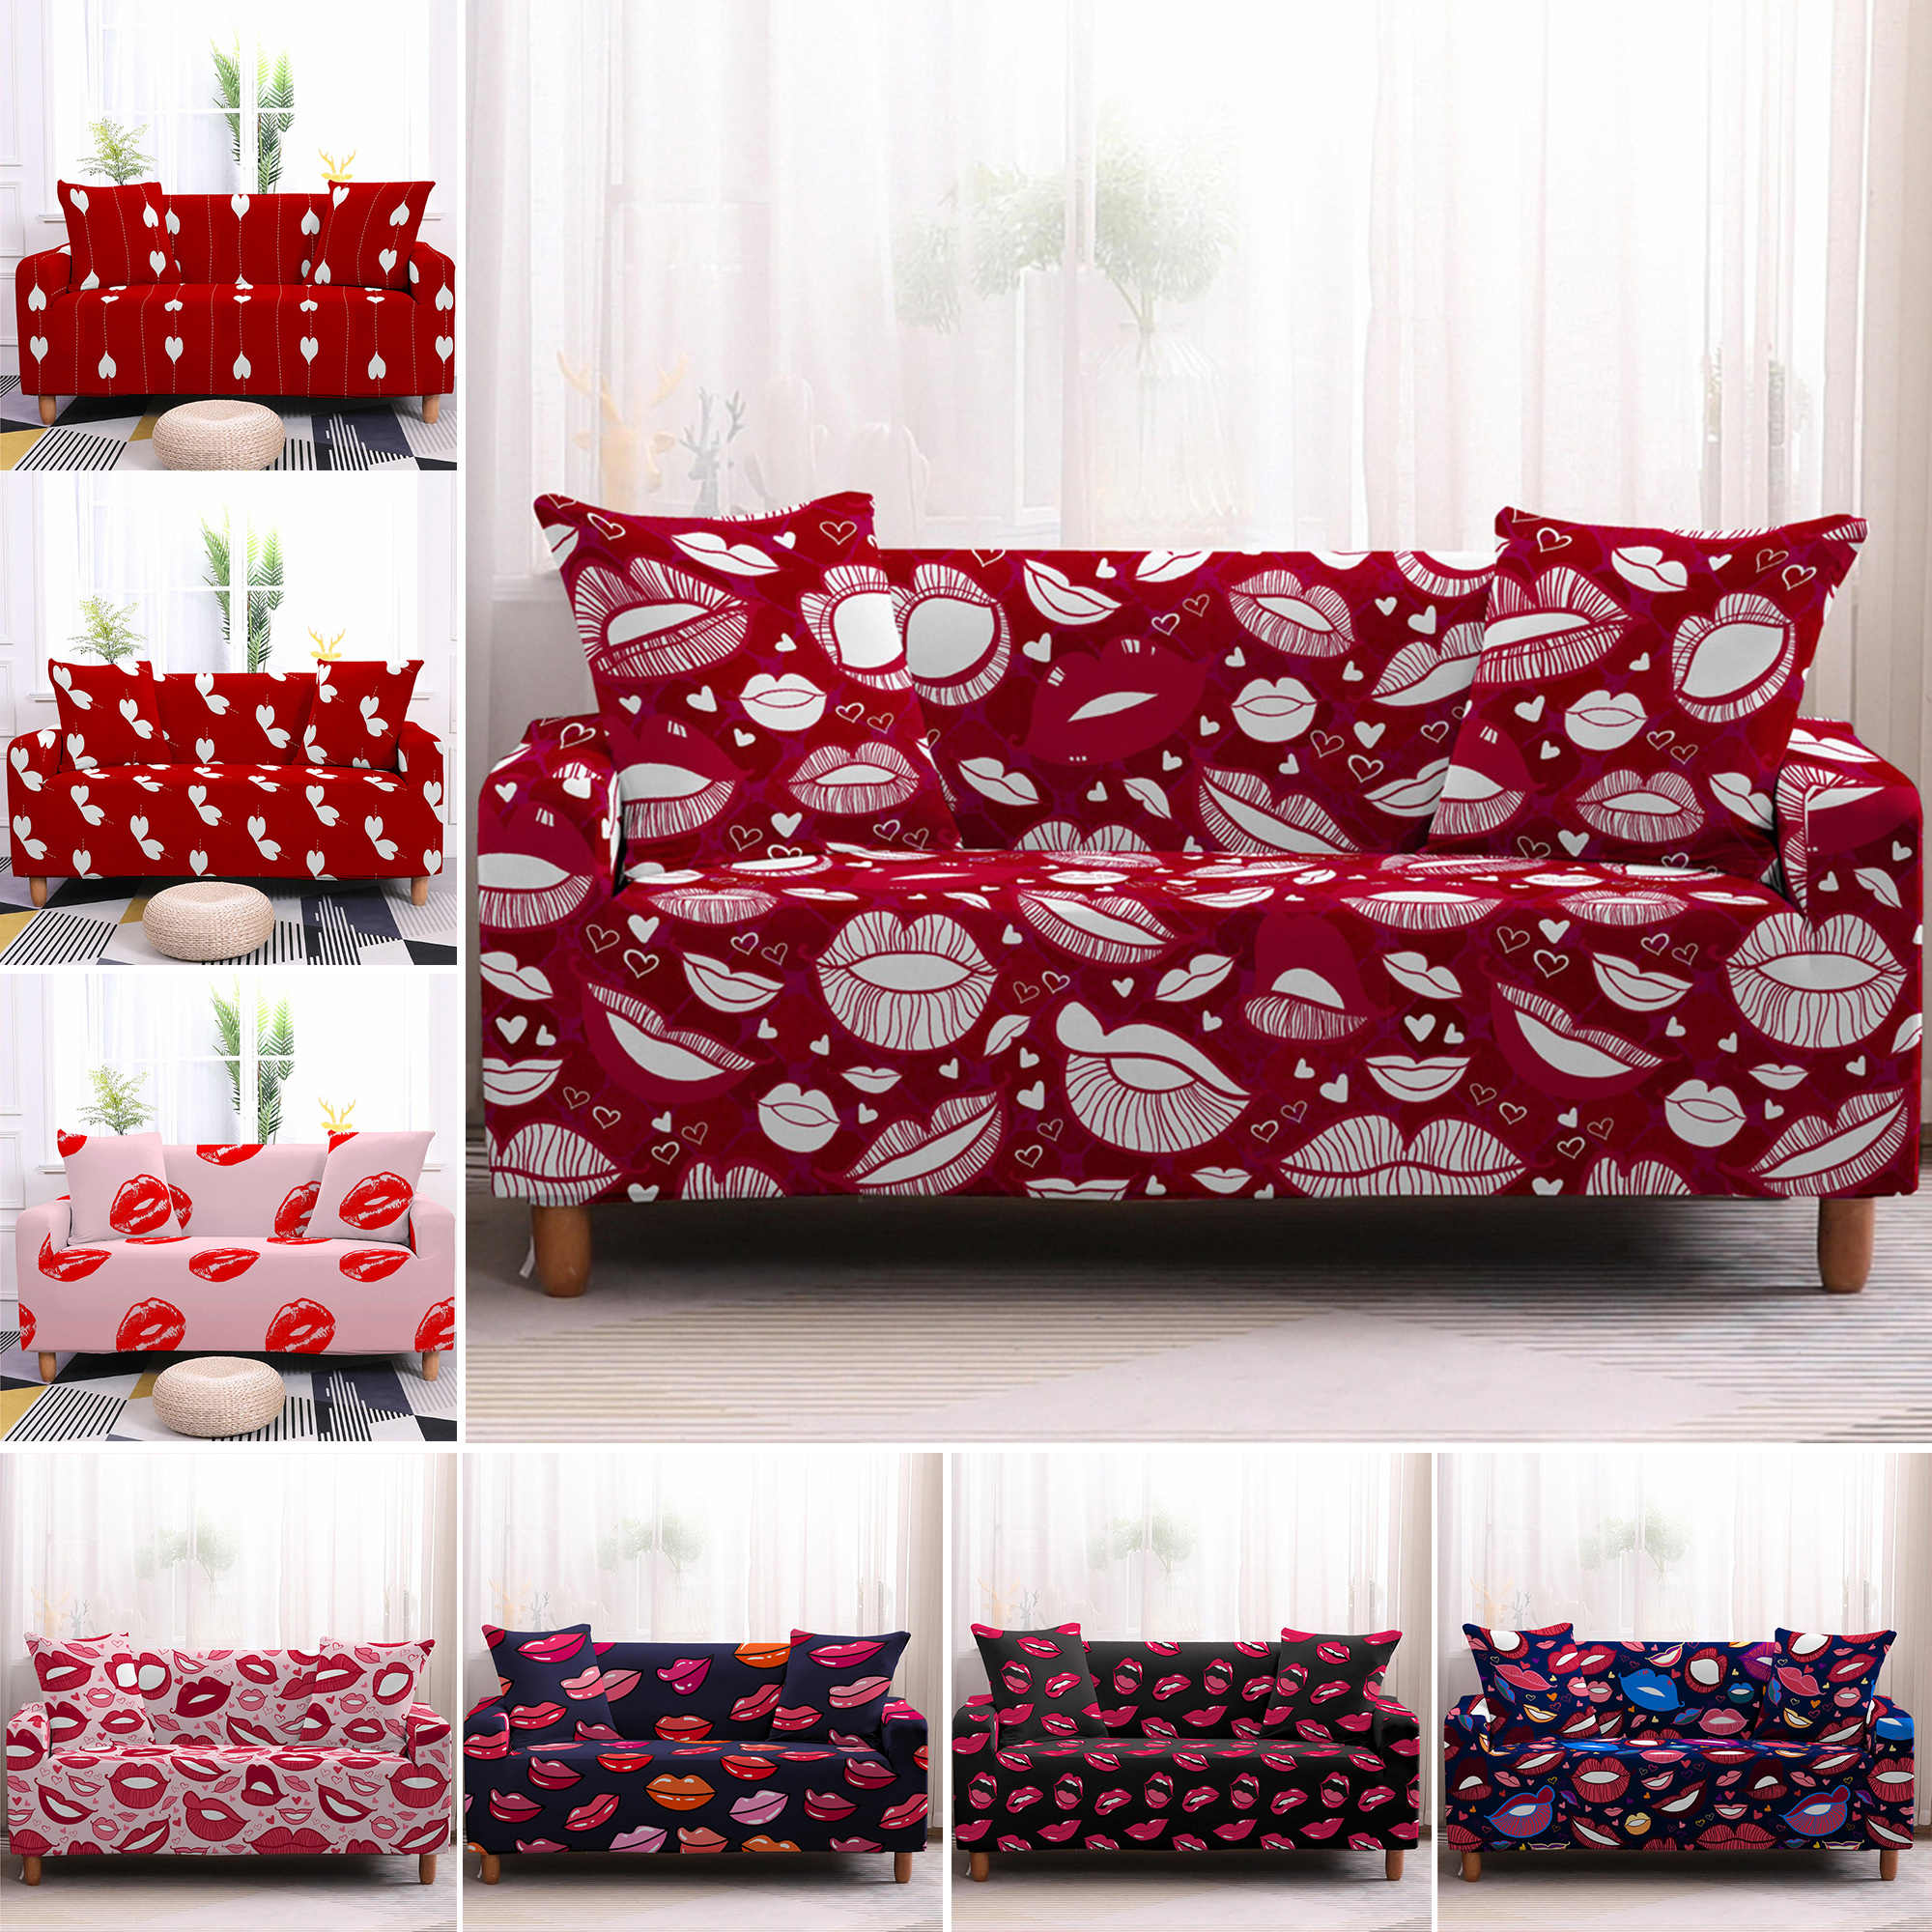 red sofa covers lips printed stretch sofa cover love heart elastic couch cover sectional sofa slipcovers for living room